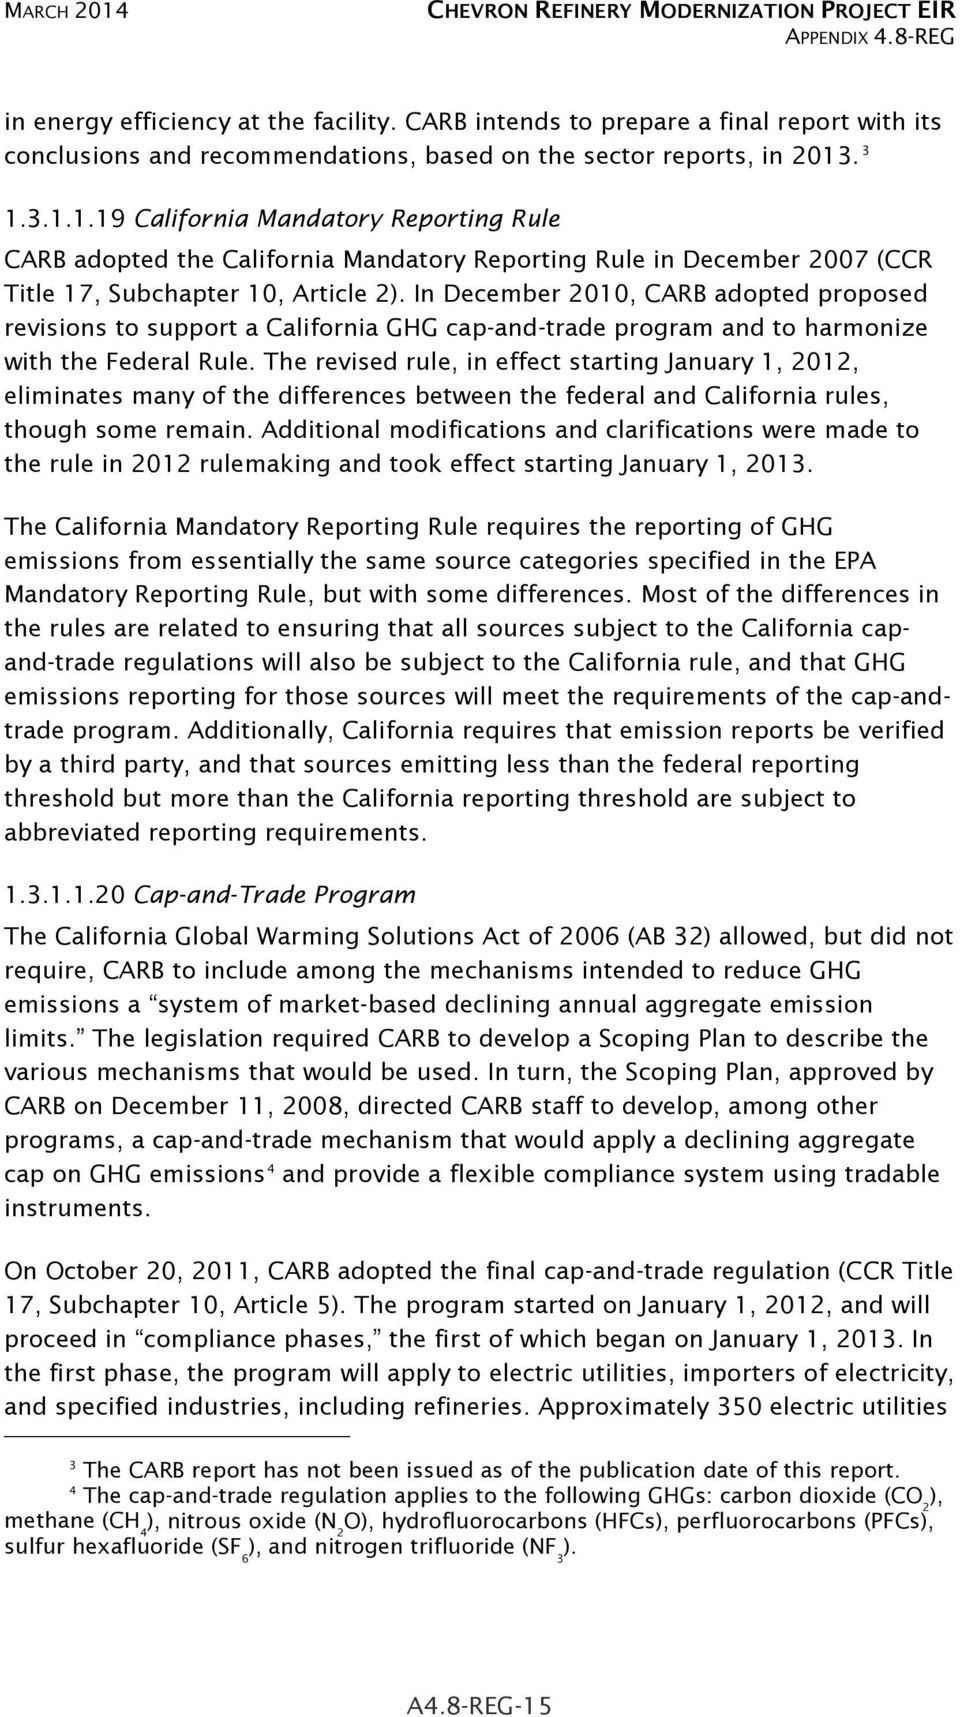 . 3 1.3.1.1.19 California Mandatory Reporting Rule CARB adopted the California Mandatory Reporting Rule in December 2007 (CCR Title 17, Subchapter 10, Article 2).